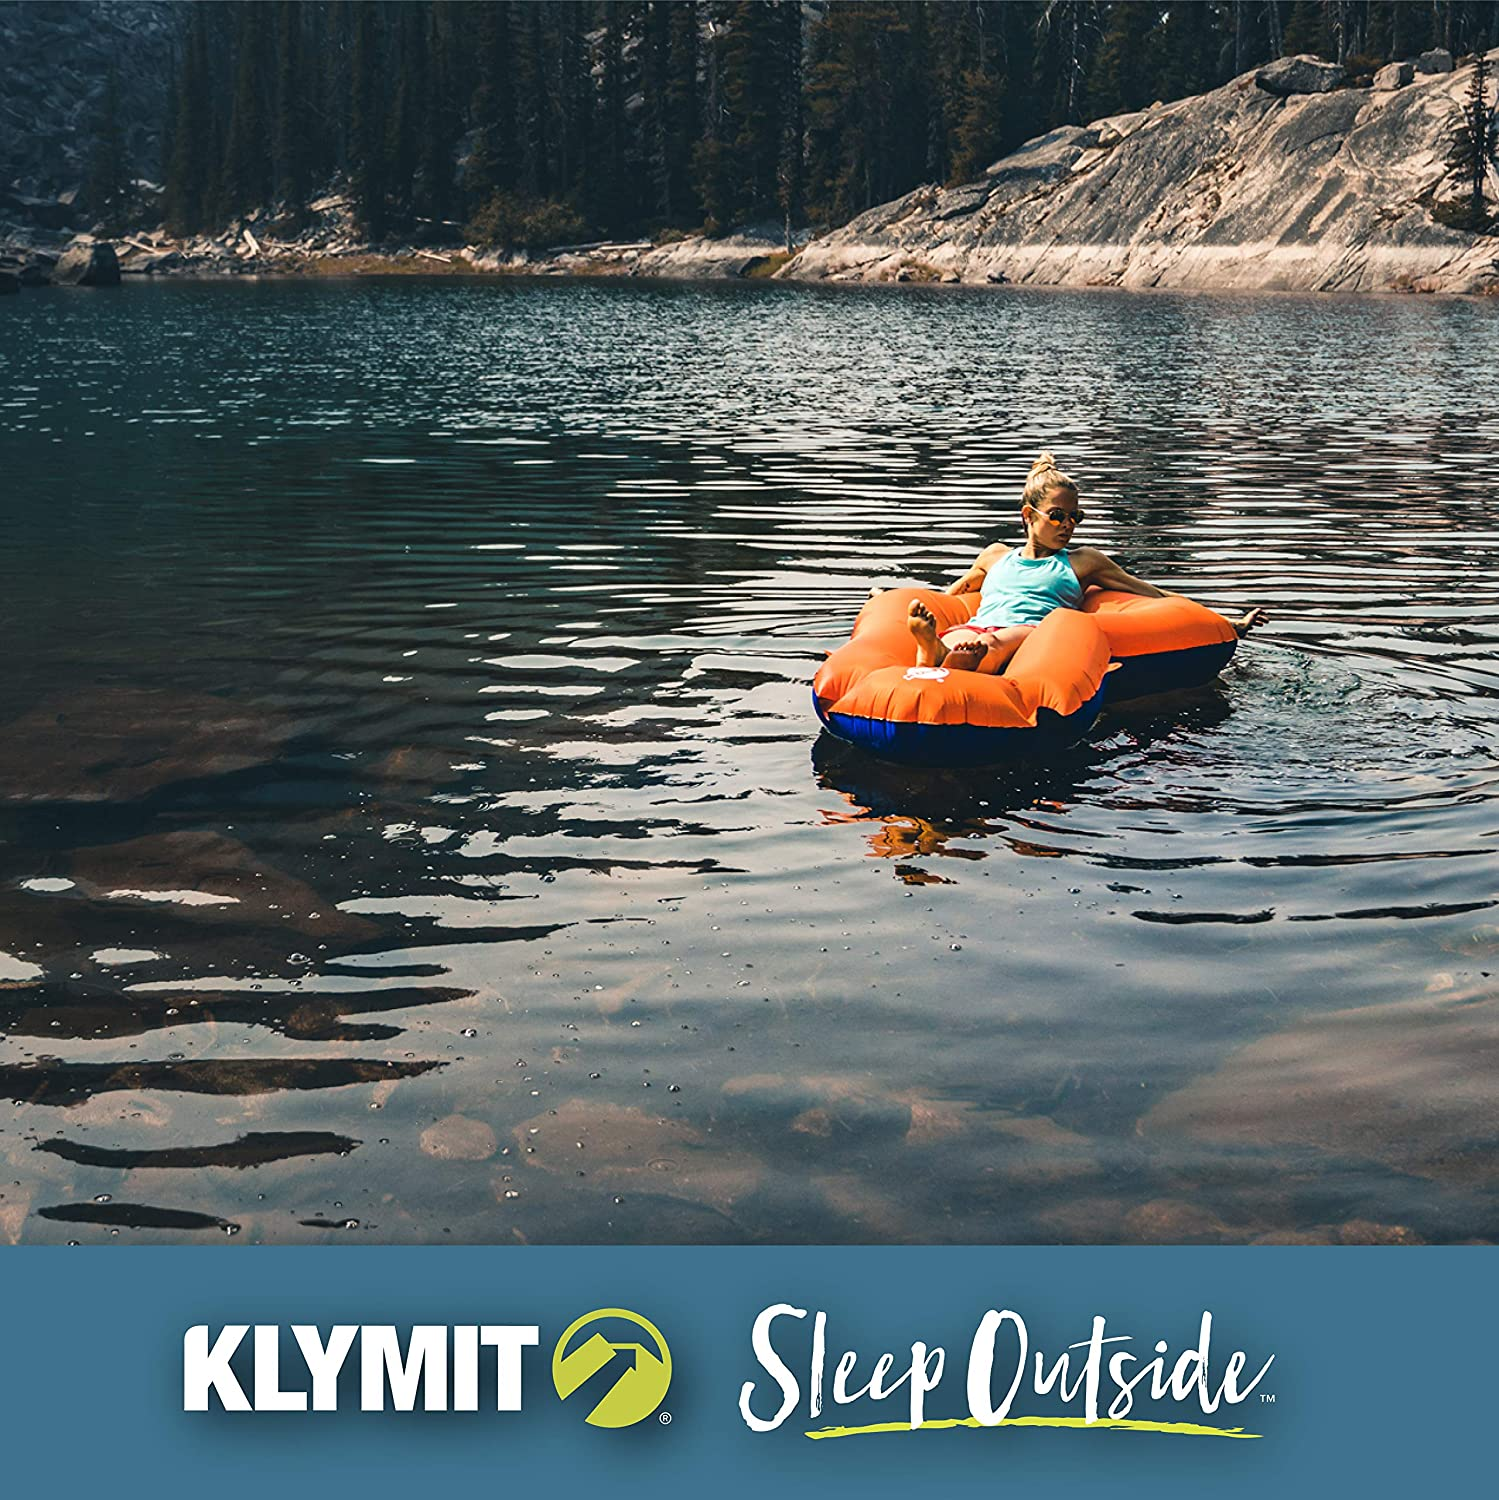 Inflatable Travel Kayak Packs Small for Backpacking LWD Packraft KLYMIT LITEWATER DINGHY